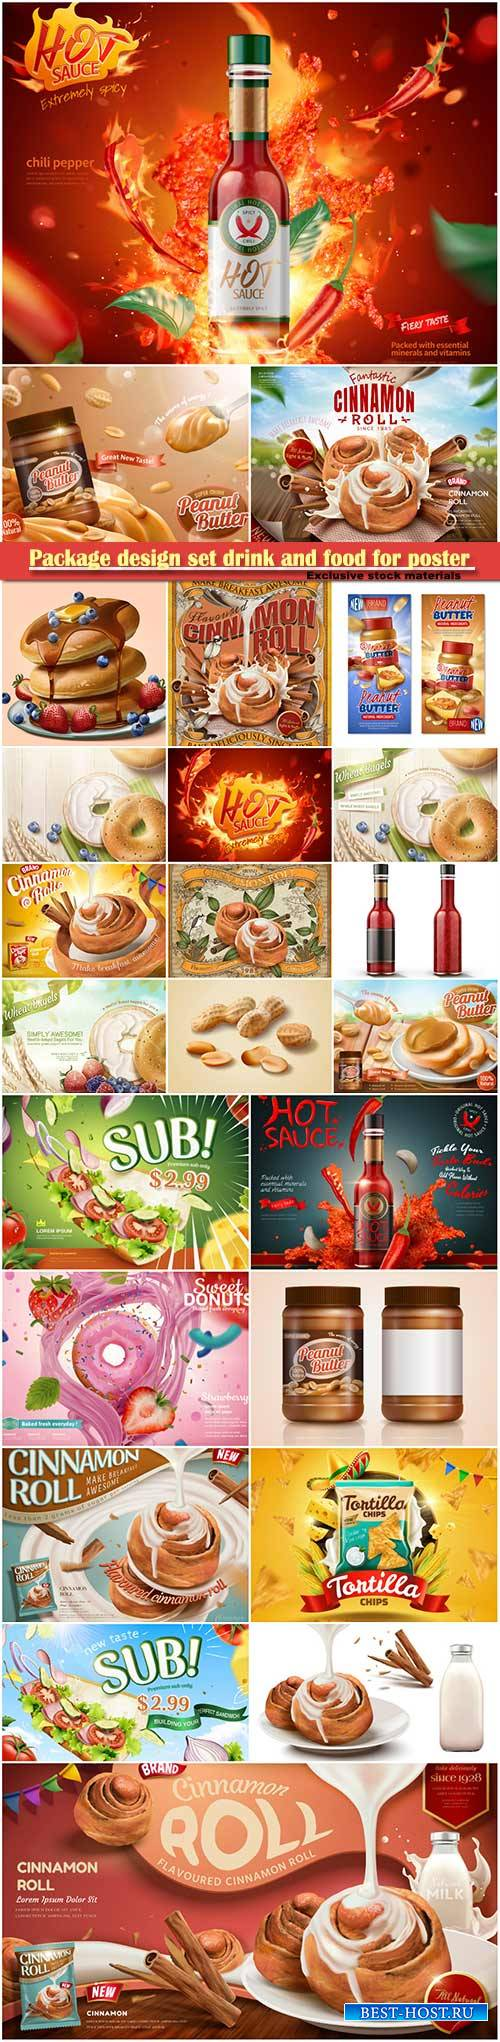 Package design set drink and food for poster or banner, realistic mockup ve ...